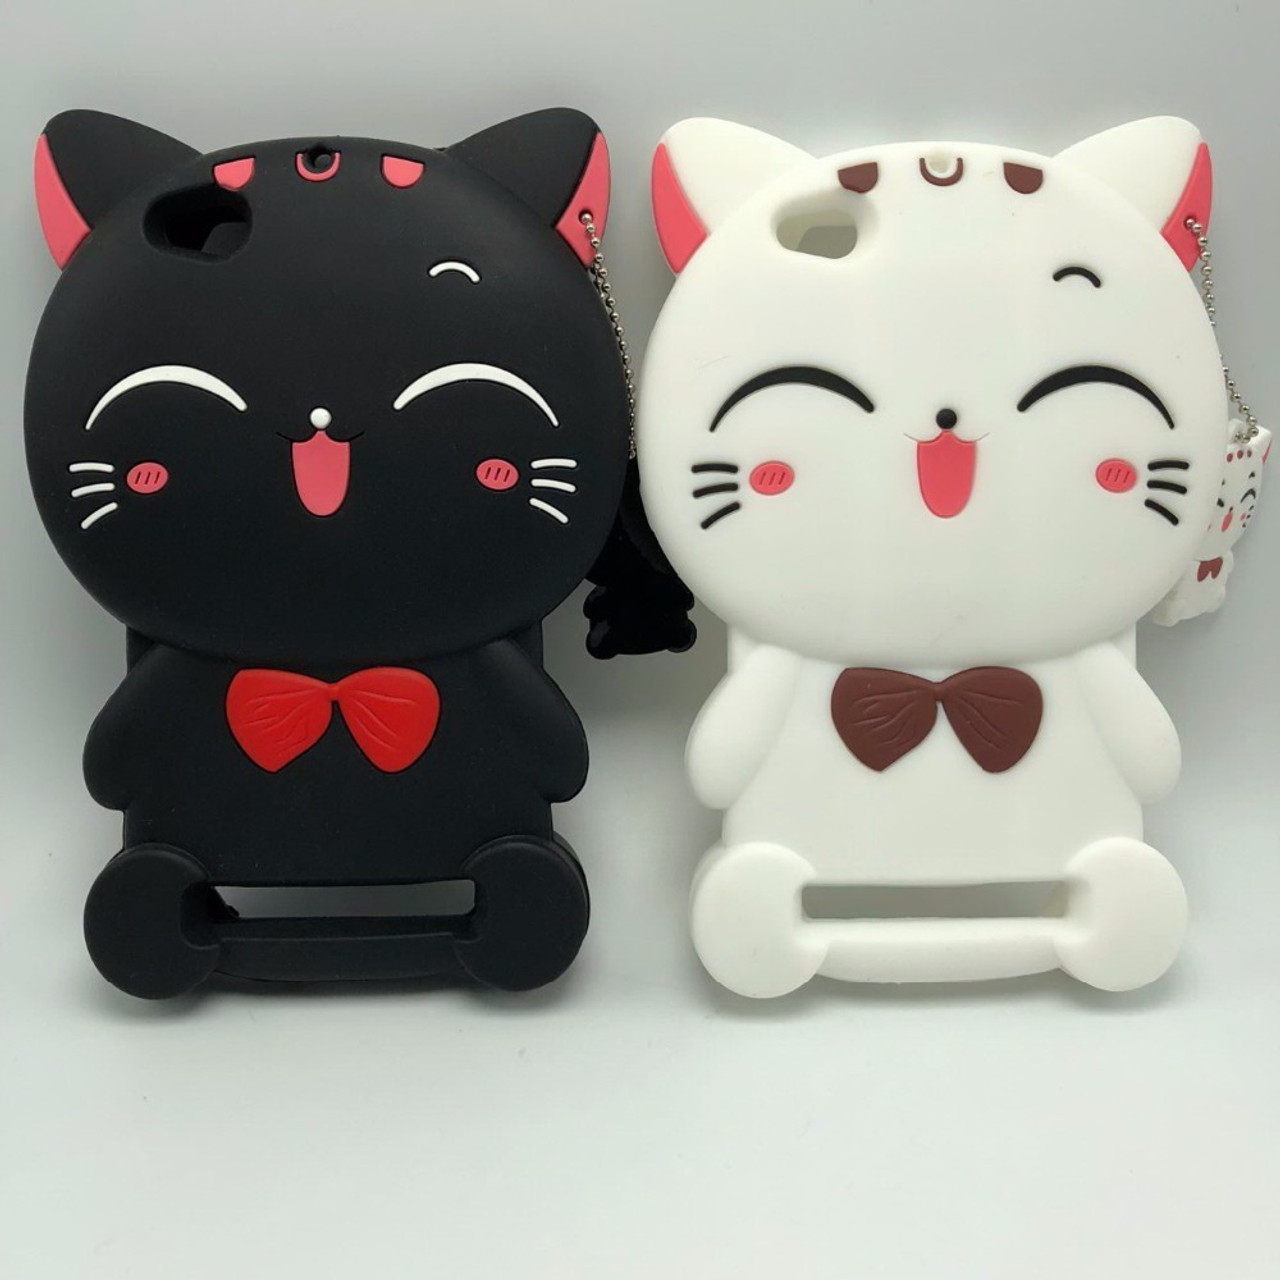 super popular 46cf9 1379a For Xiaomi Redmi 5A 3D Silicon Lucky Cat Cartoon Soft Cell Phone Case Cover  for redmi 5A 5.0 inch